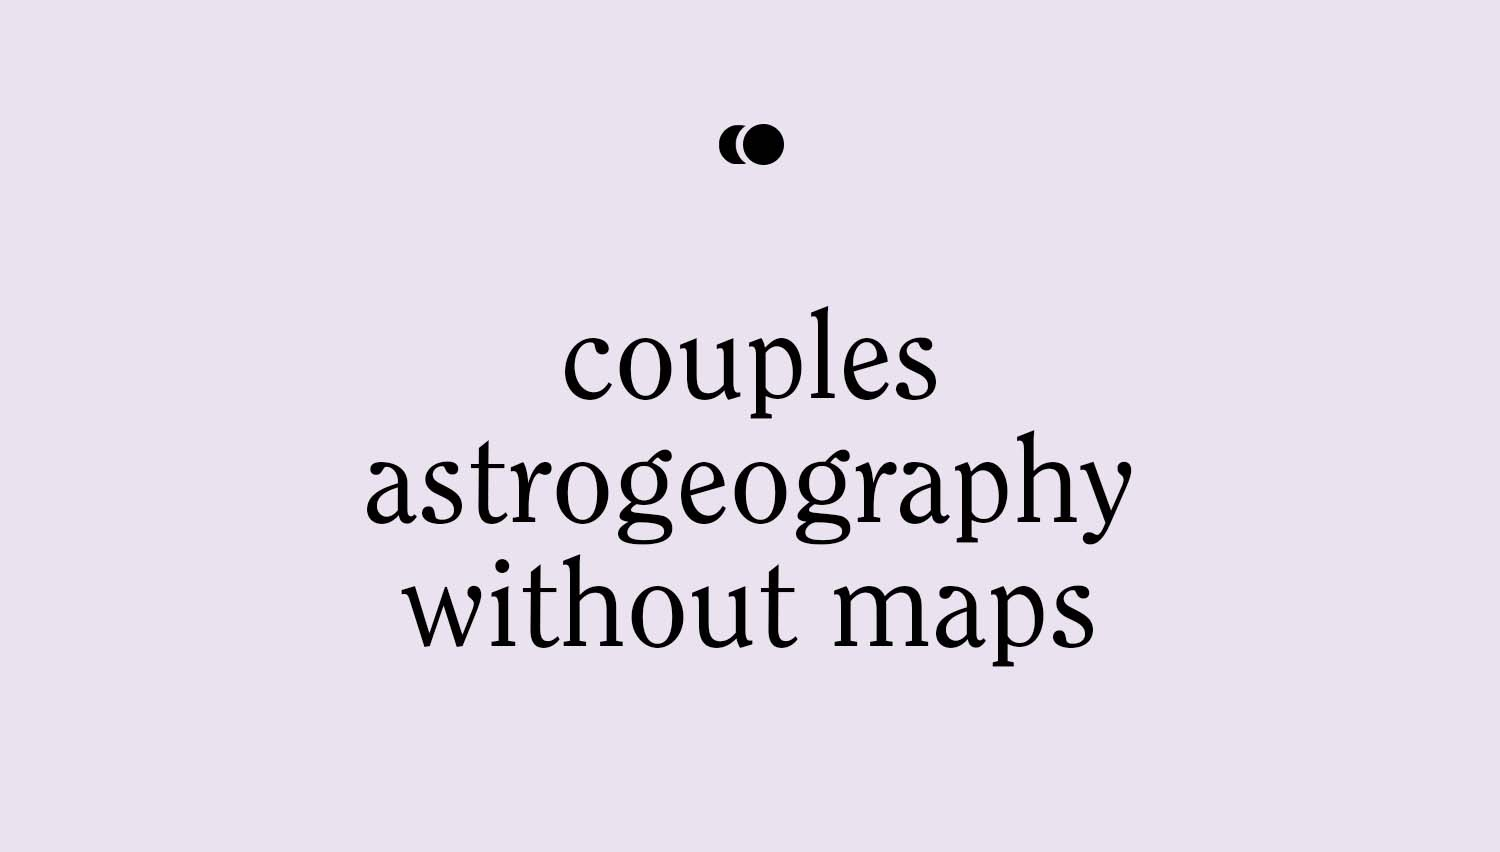 sessions_astro_couples_wo_maps_page.jpg